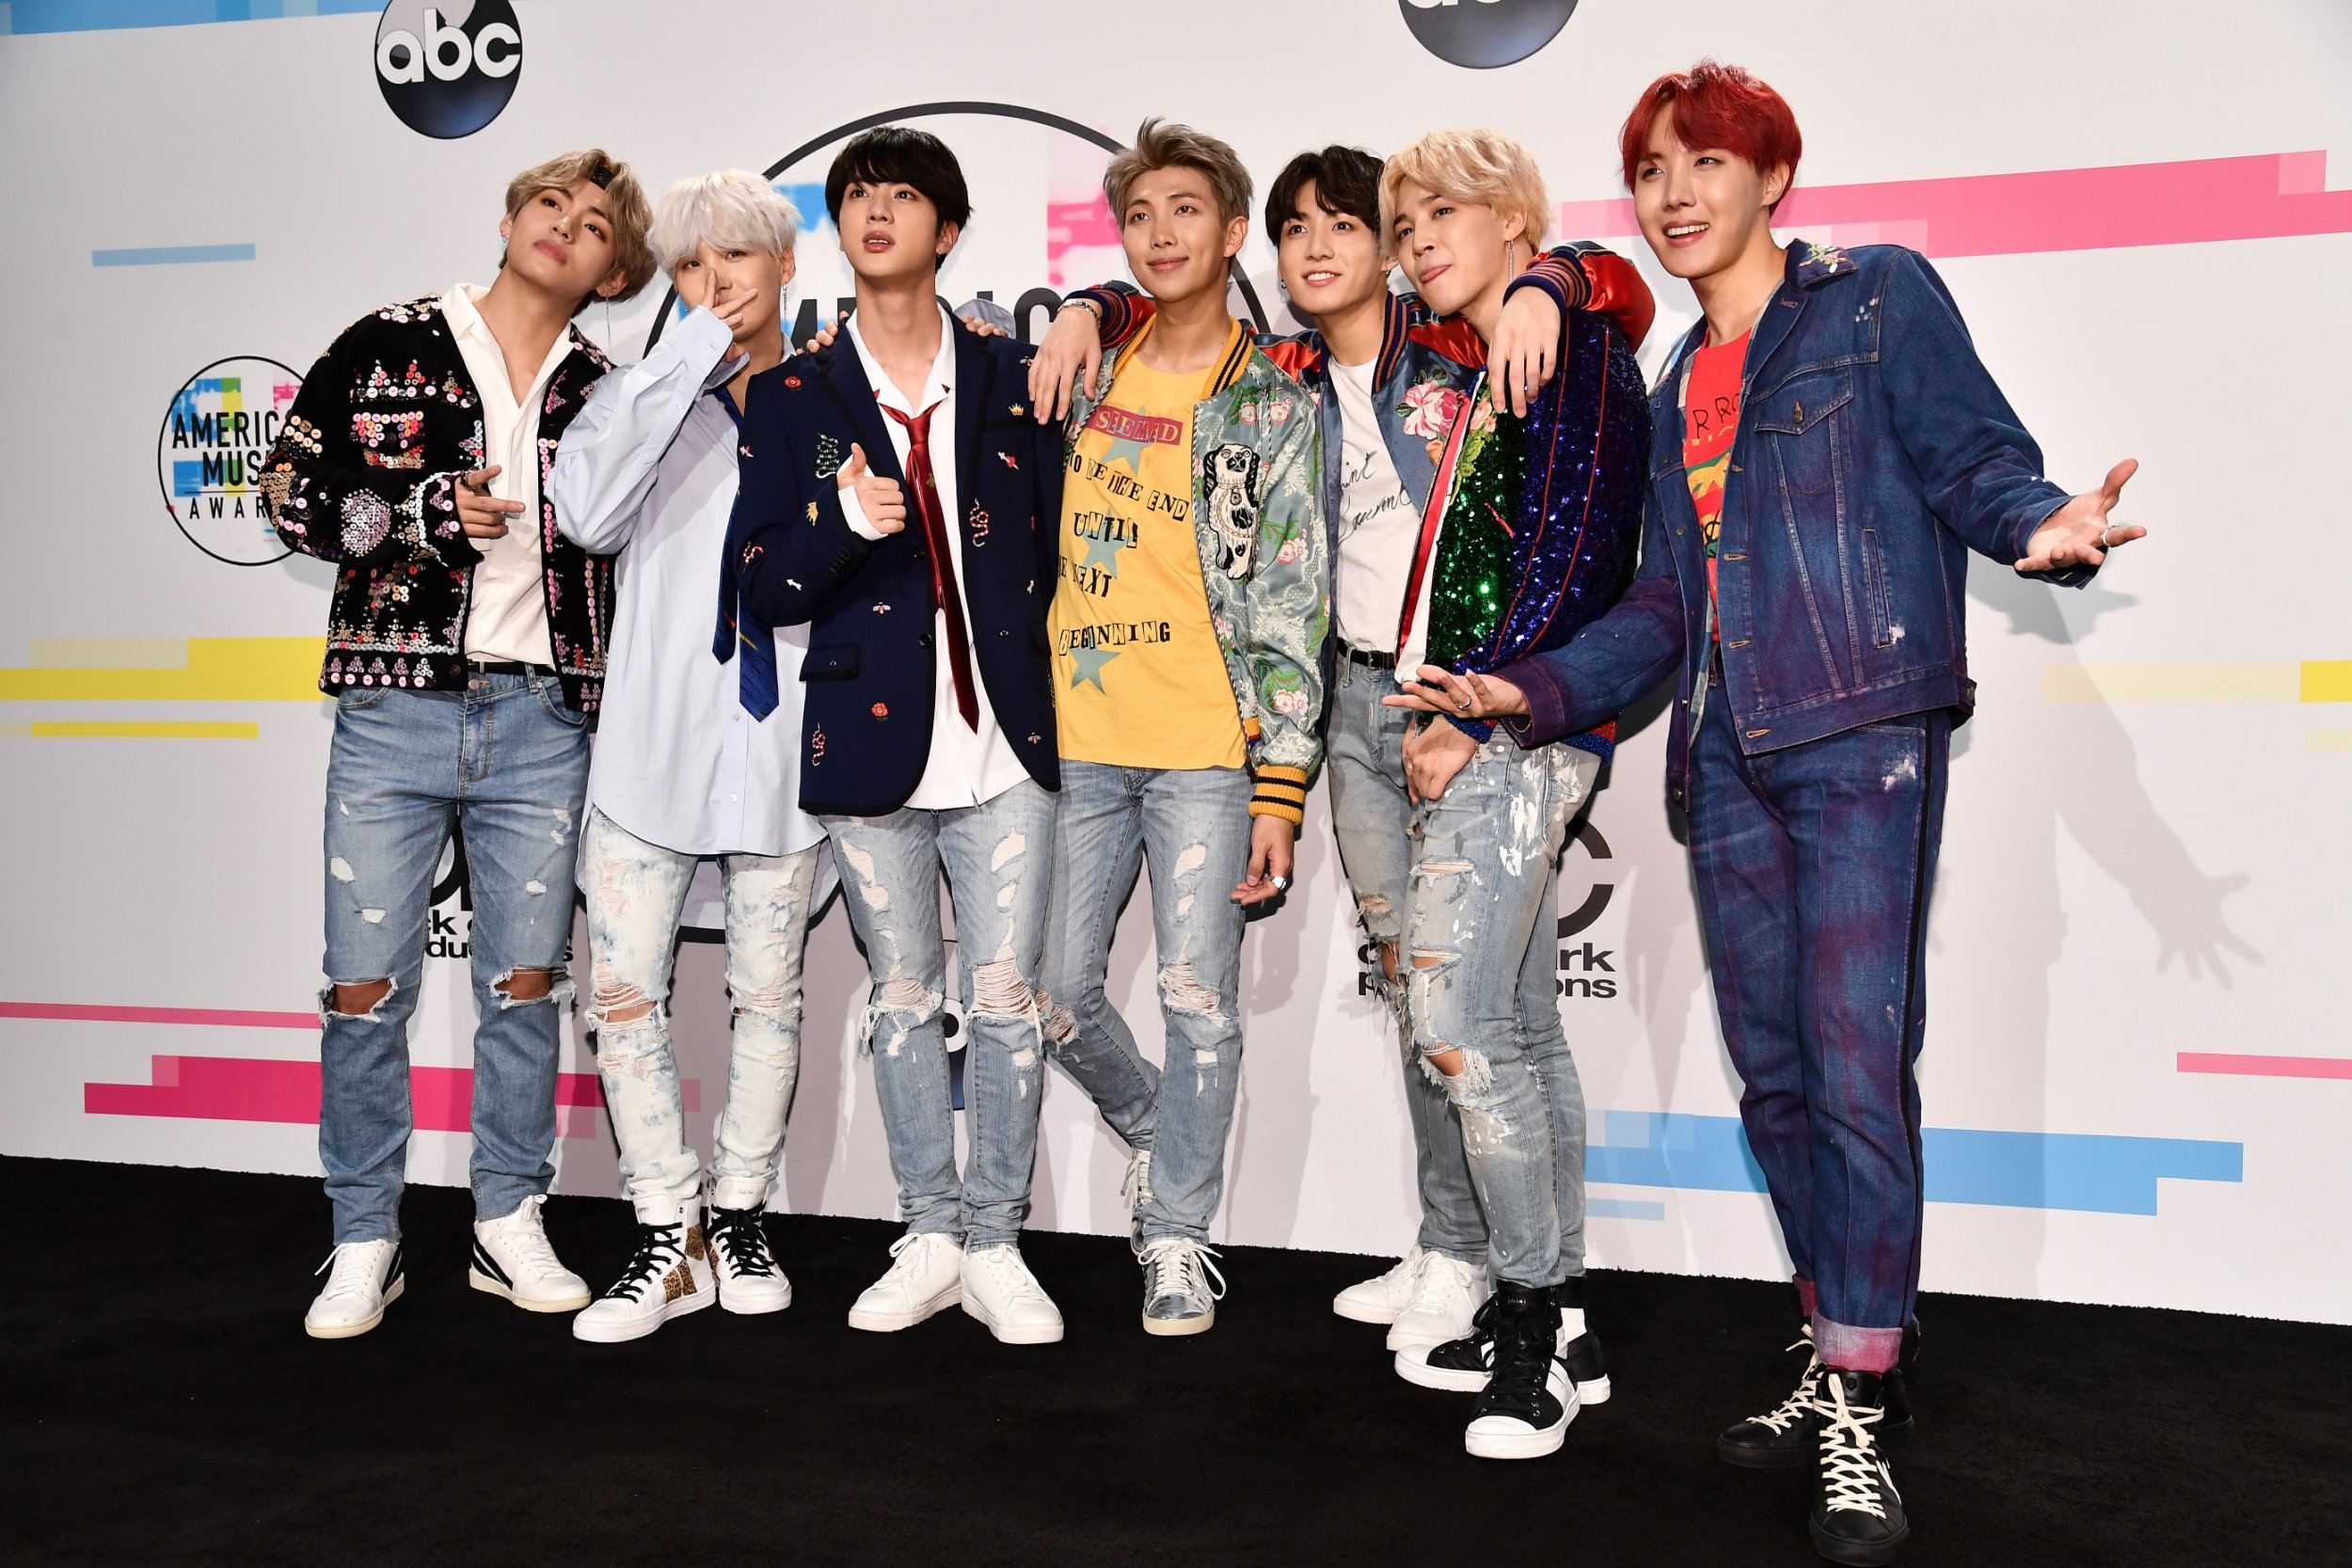 Mandatory Credit: Photo by Rob Latour/REX/Shutterstock (9229095bb) BTS - Jungkook, Jimin, V, Suga, Jin, J-Hope and Rap Monster American Music Awards, Press Room, Los Angeles, USA - 19 Nov 2017